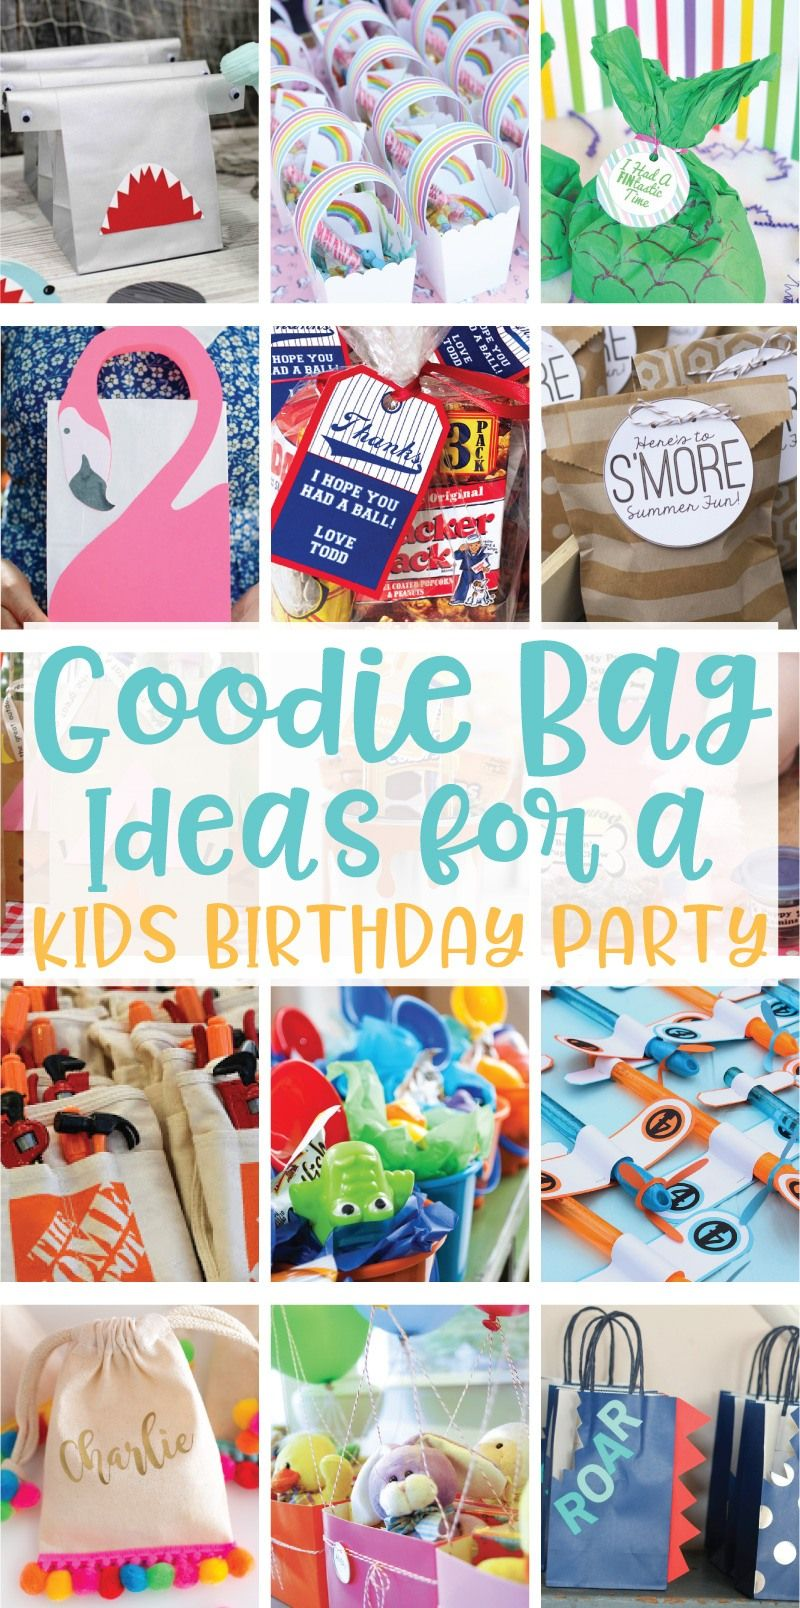 20 Goodie Bag Ideas For Kids Birthday Parties Birthday Party Gift Bag Ideas Birthday Party Goodie Bags Birthday Goodie Bags